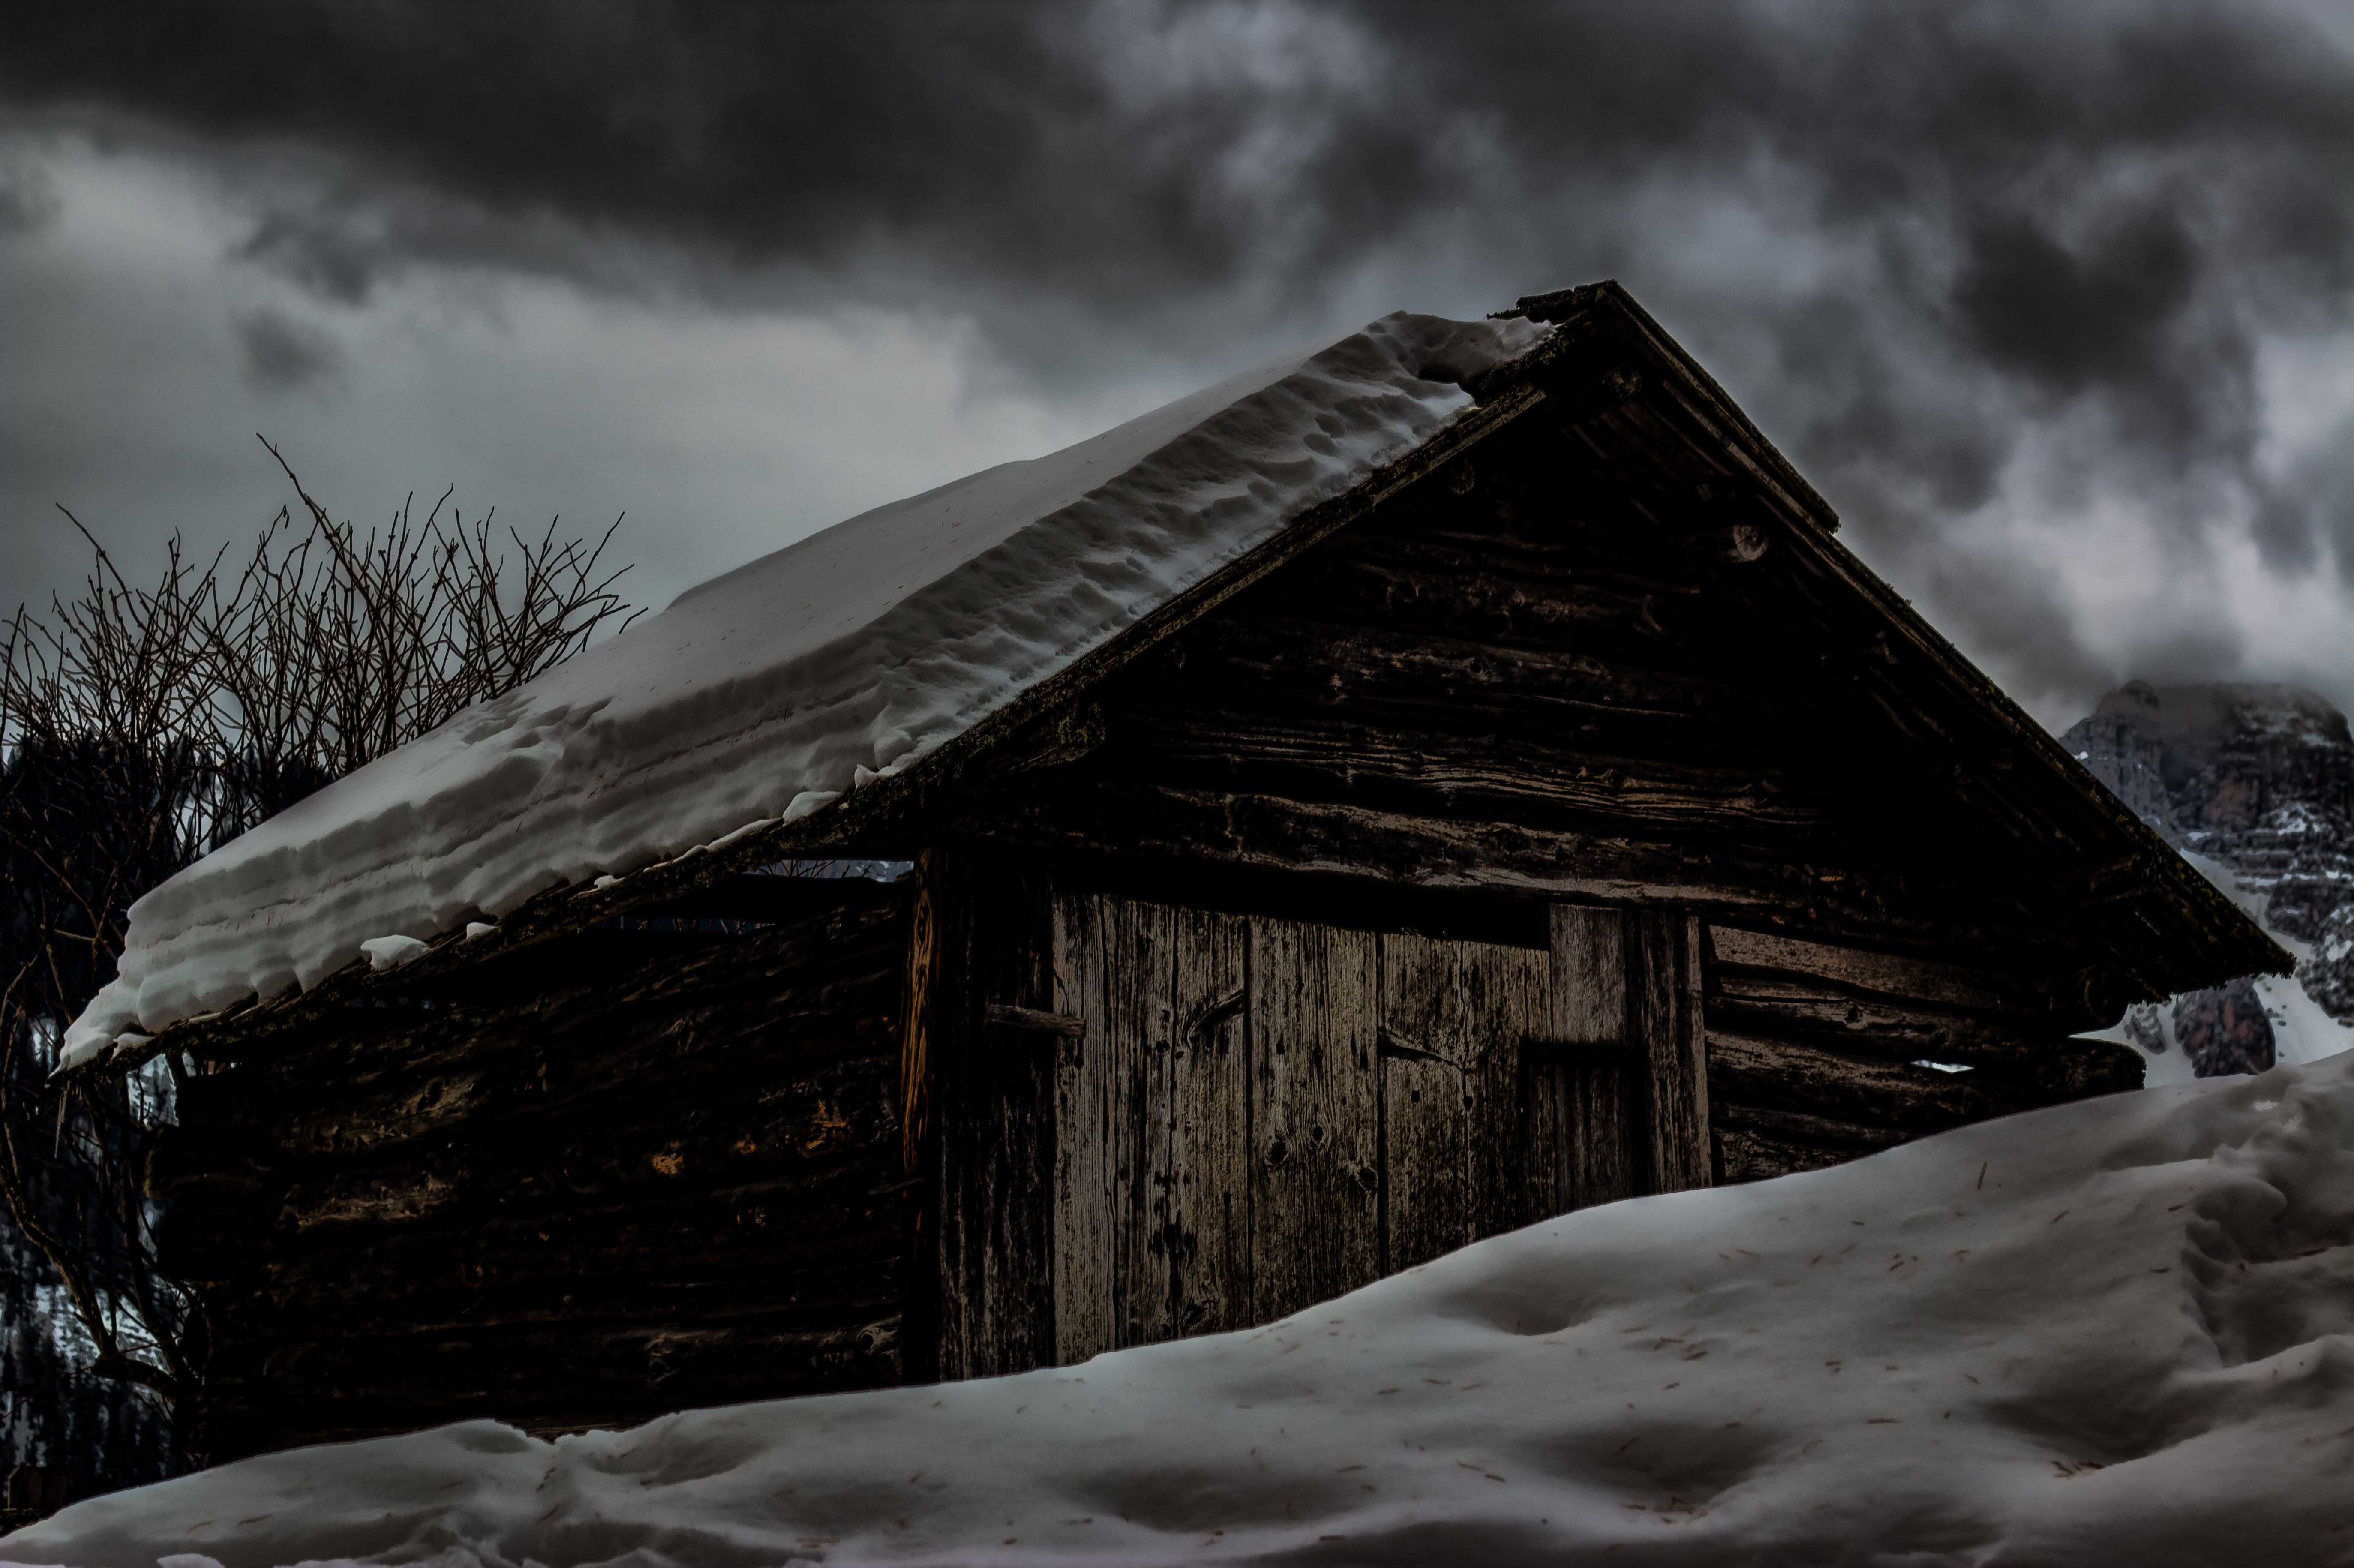 Cabin Covered by Snow, Cabin, Outdoors, Winter, Weather, HQ Photo